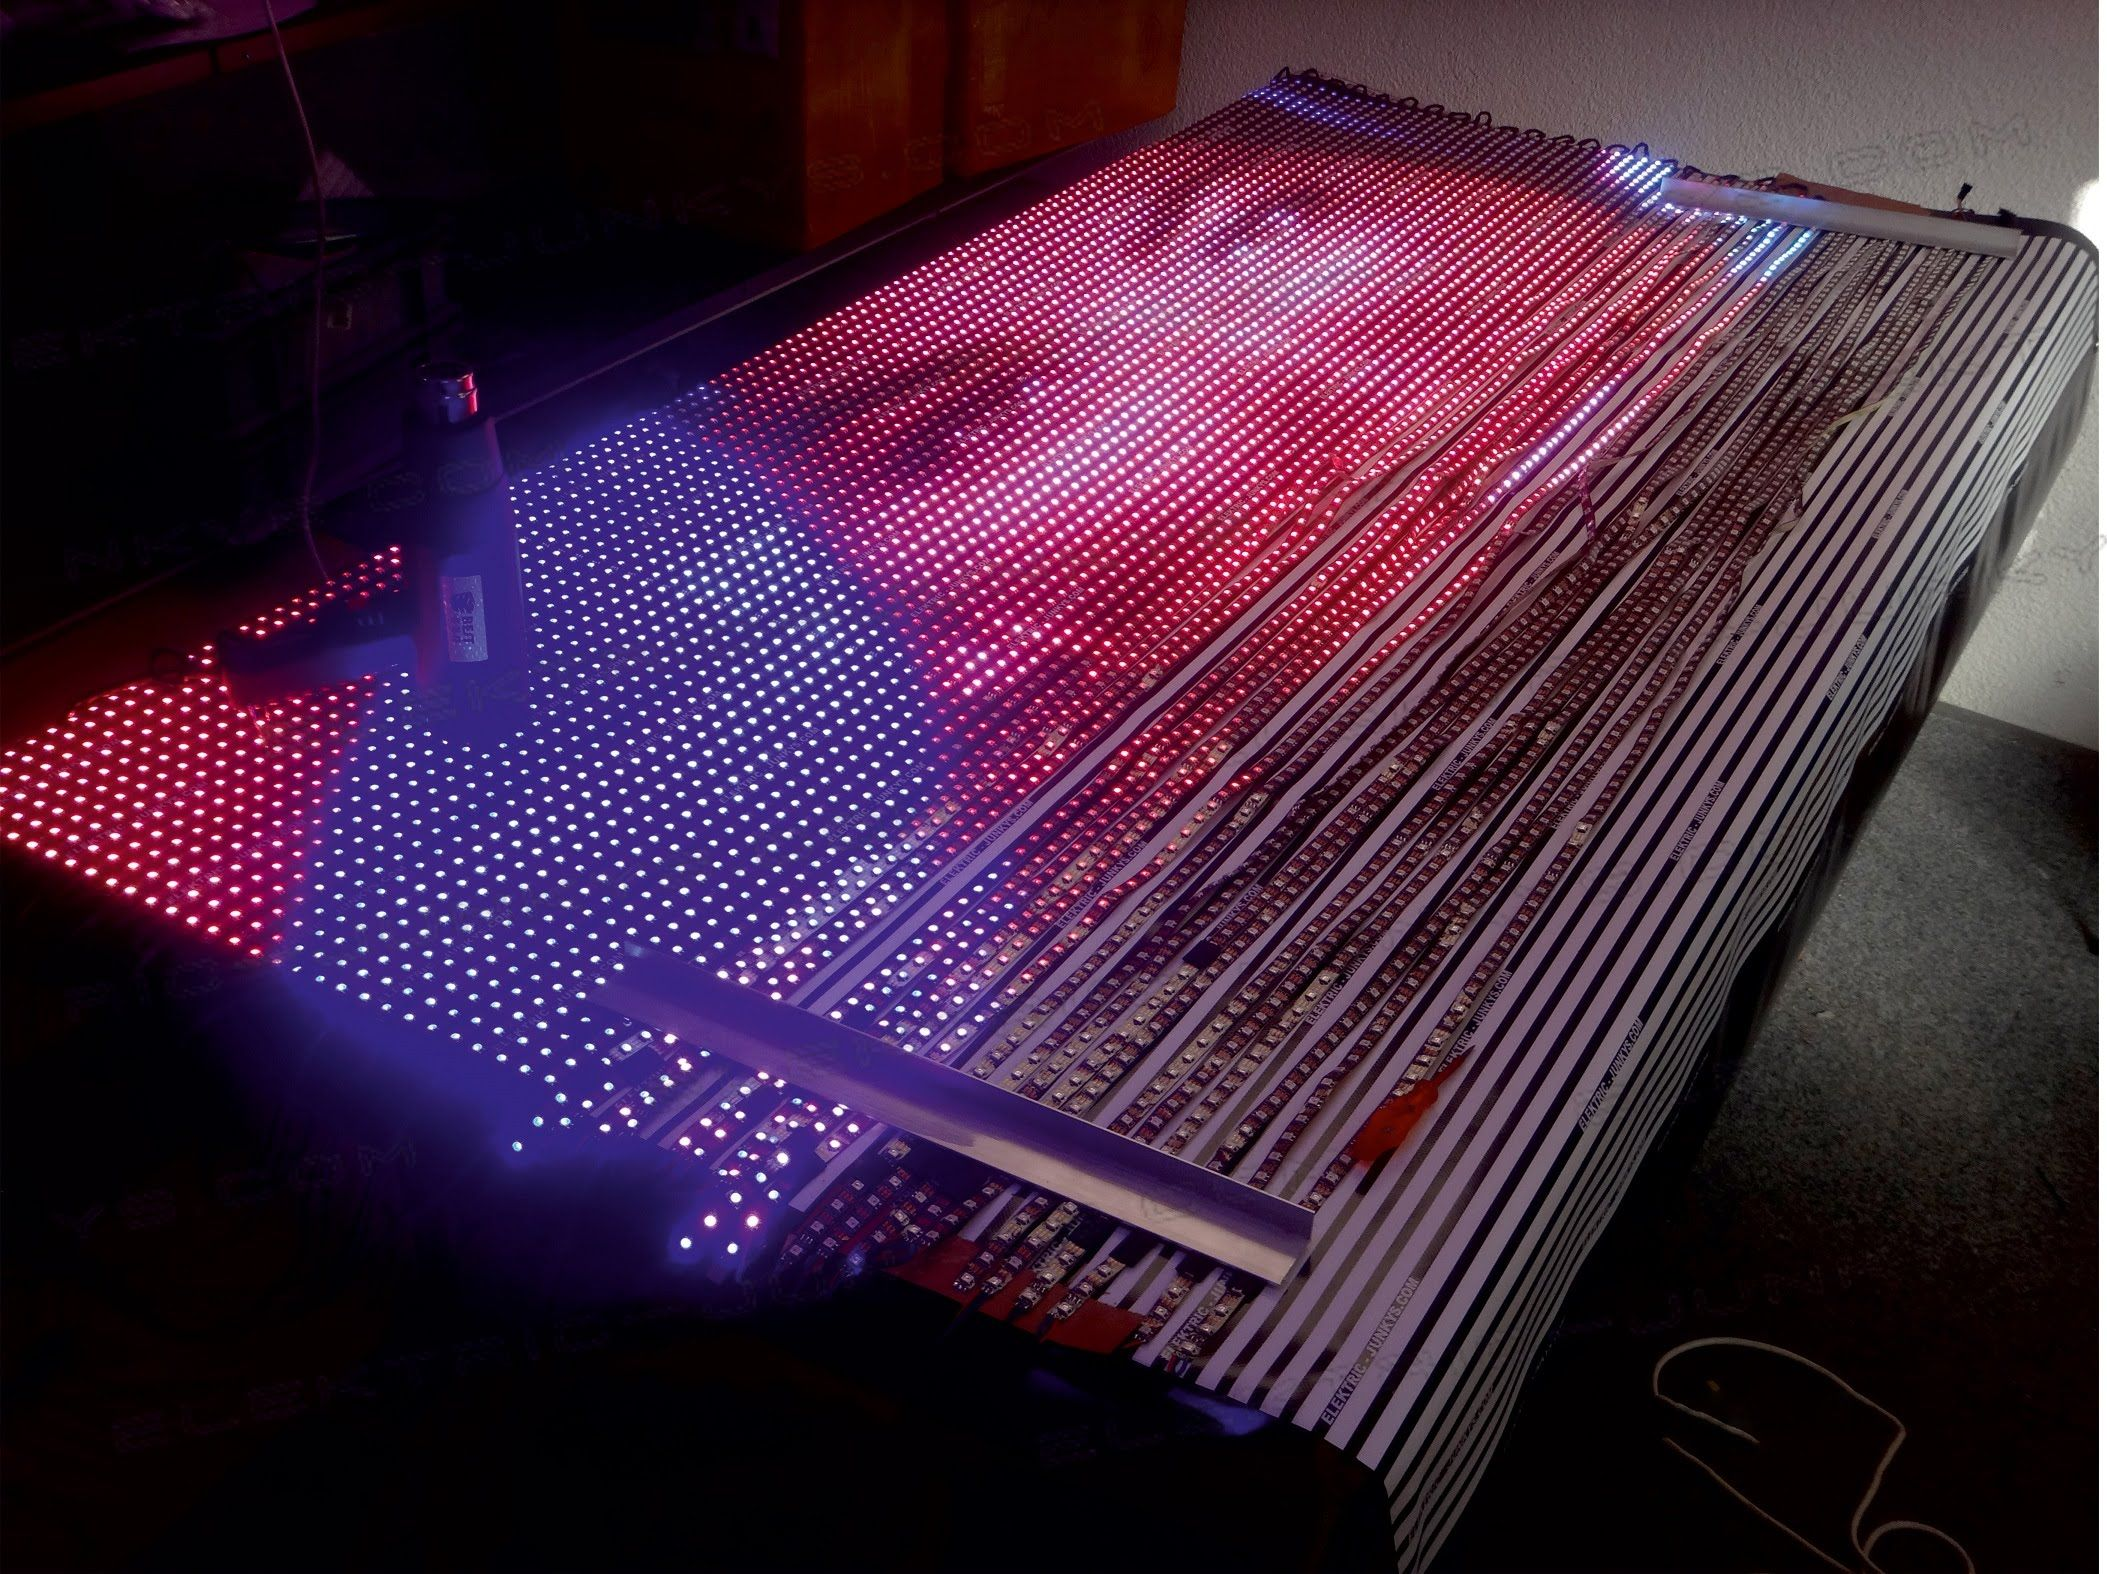 How To Build Your Own Flexible Led Display By Led Strips Was Our First Diy Video Project In The Led Programming Field People Ask Us To Led Diy Led Curtain Led